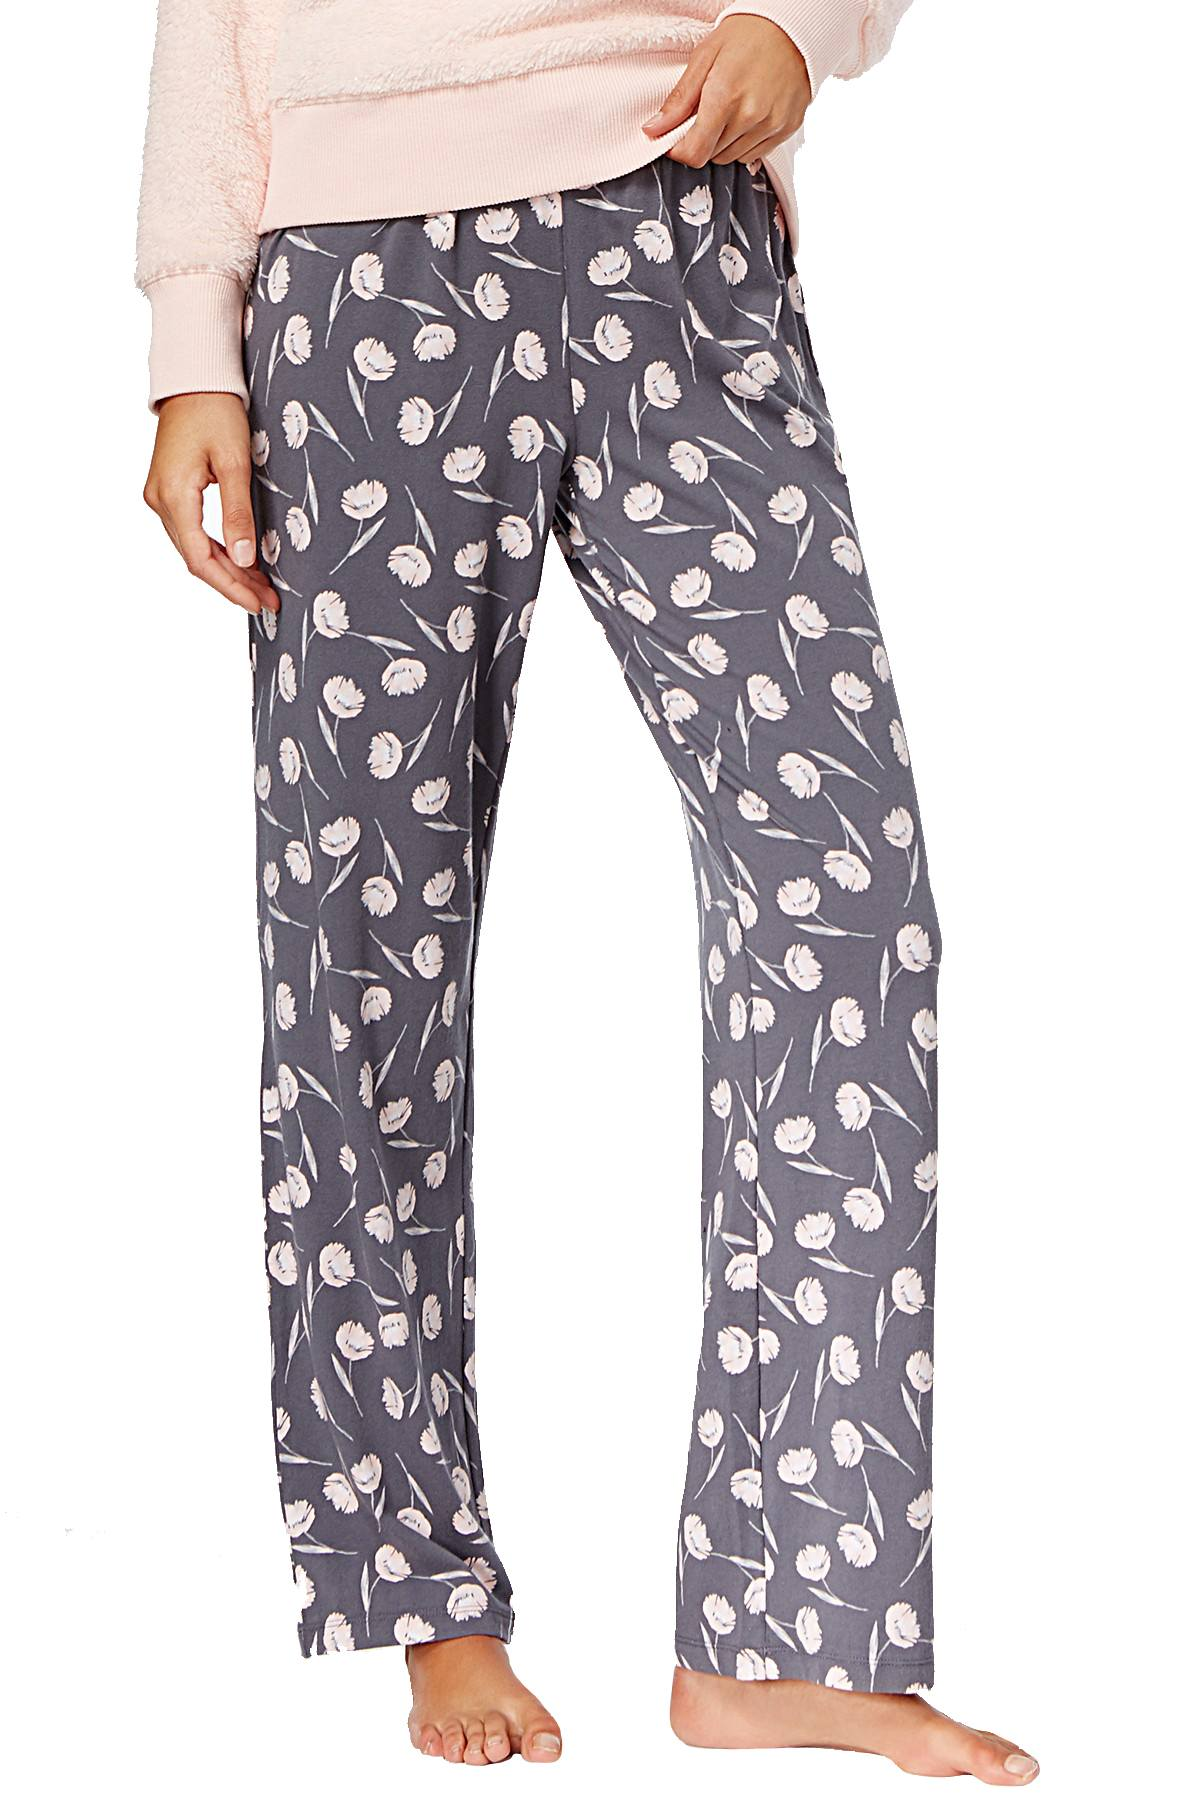 Alfani Knit Lounge Pant in Grey/Pink Floral